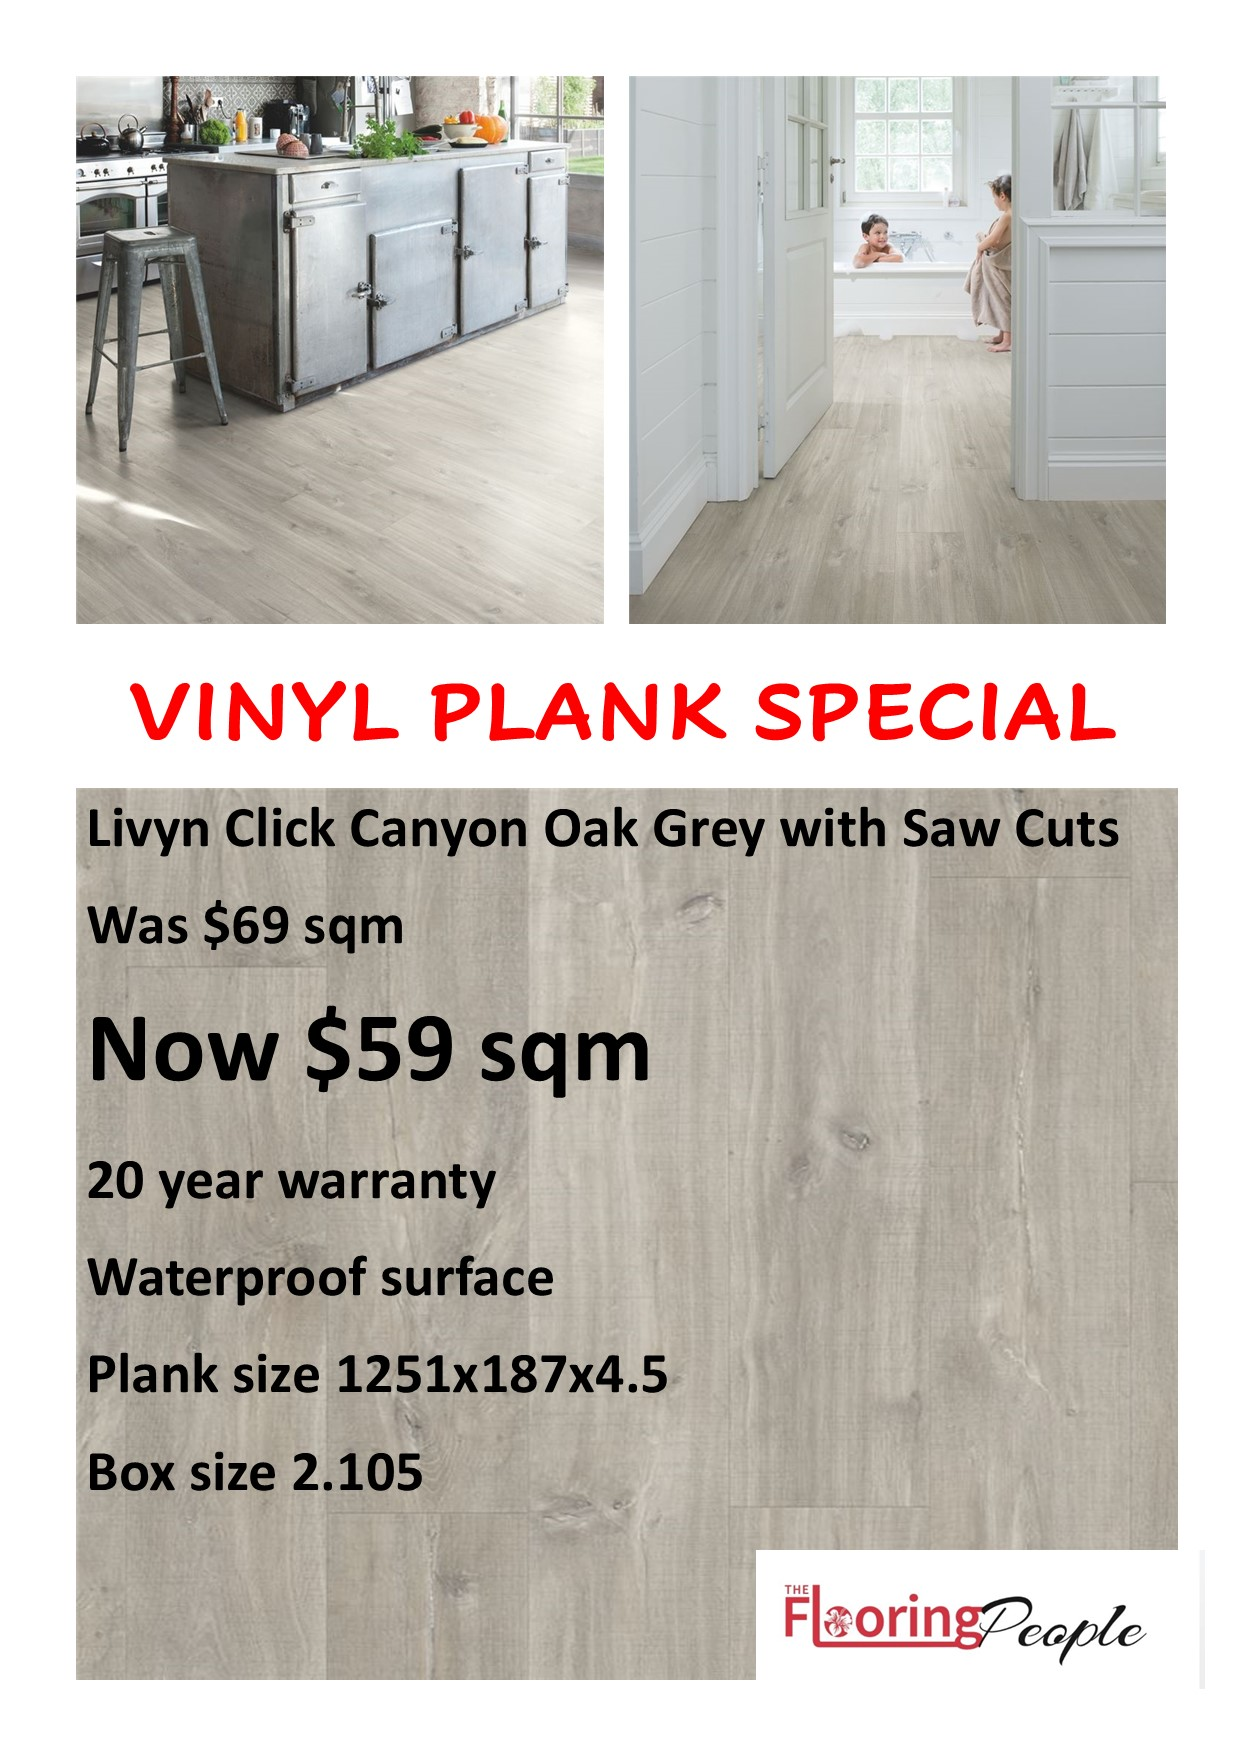 Livyn Click Canyon Oak Grey